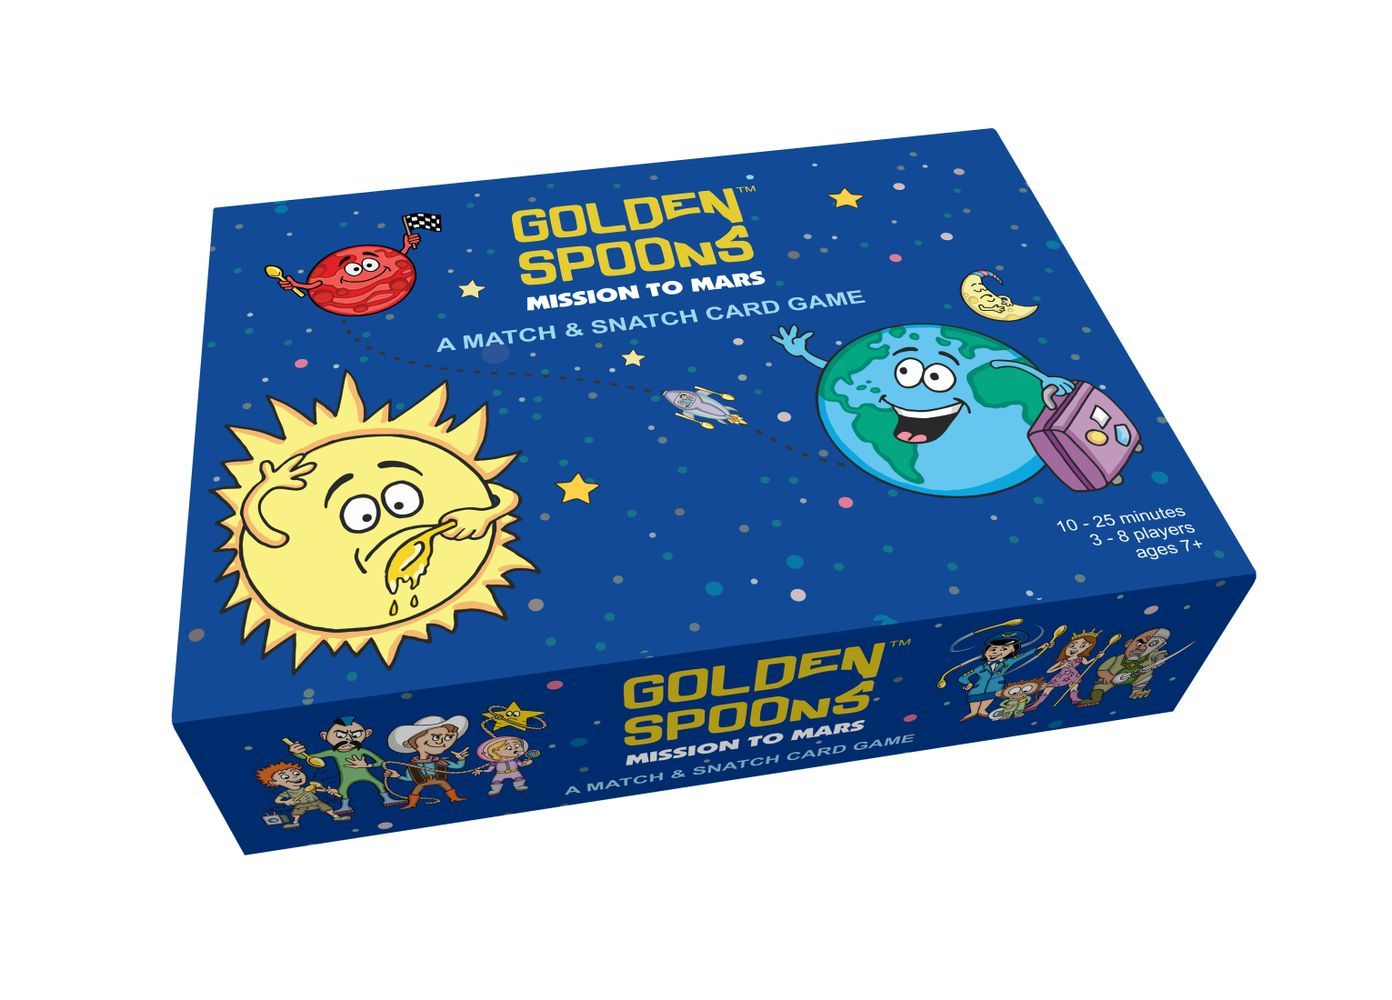 Buy Golden Spoons: Mission to Mars – A Match & Snatch Card Game from Walking Pants Curiosities, the Most un-General Gift Store in Downtown Memphis, Tennessee!